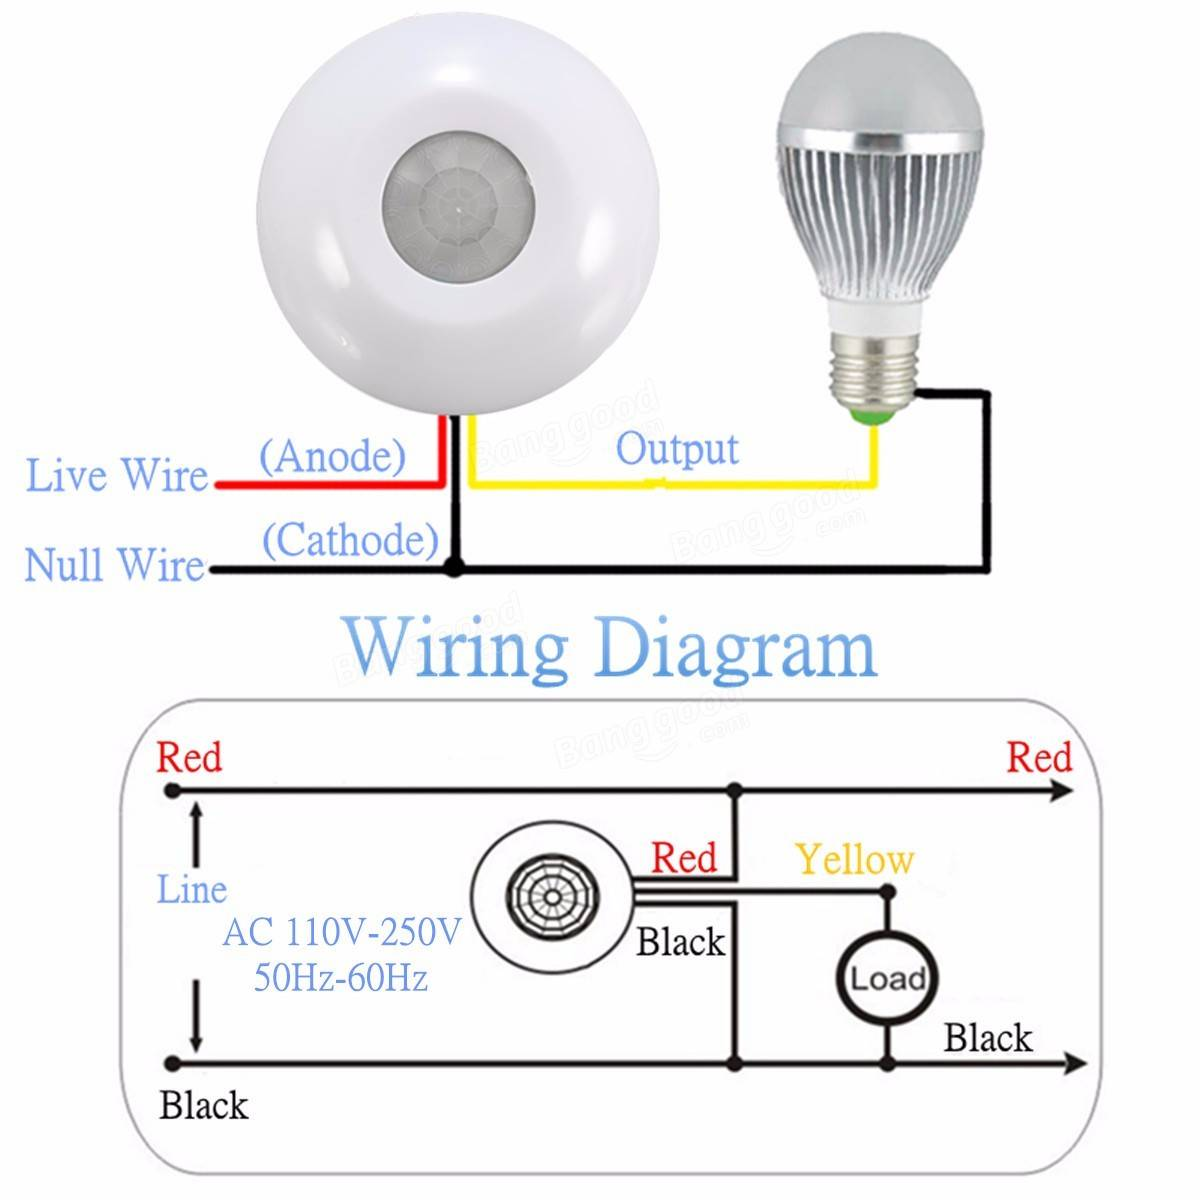 cf6b921a c035 4cc9 babe c893b38d7481 360� infrared human body induction switch pir motion sensor wiring diagram motion sensor at aneh.co